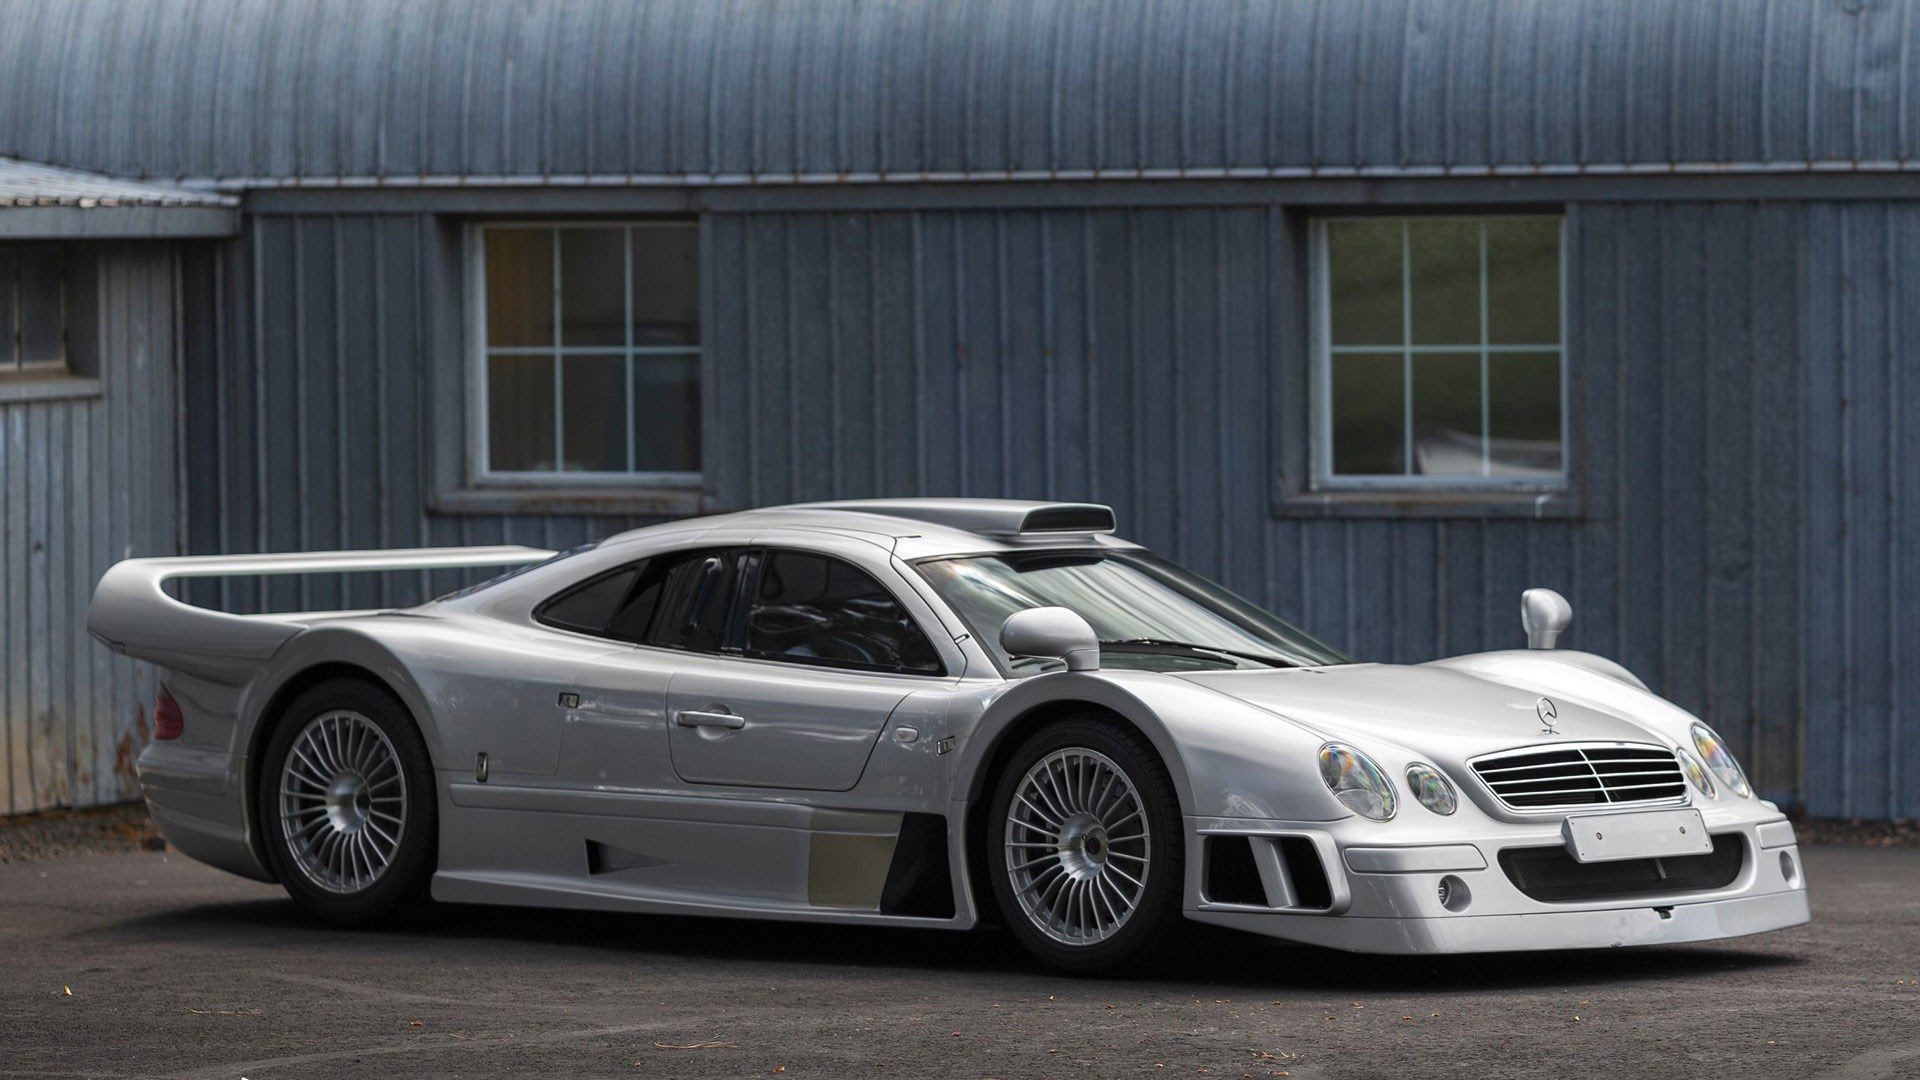 Mercedes CLK GTR: Iconic Road Car To Go On Sale At Pebble Beach ...